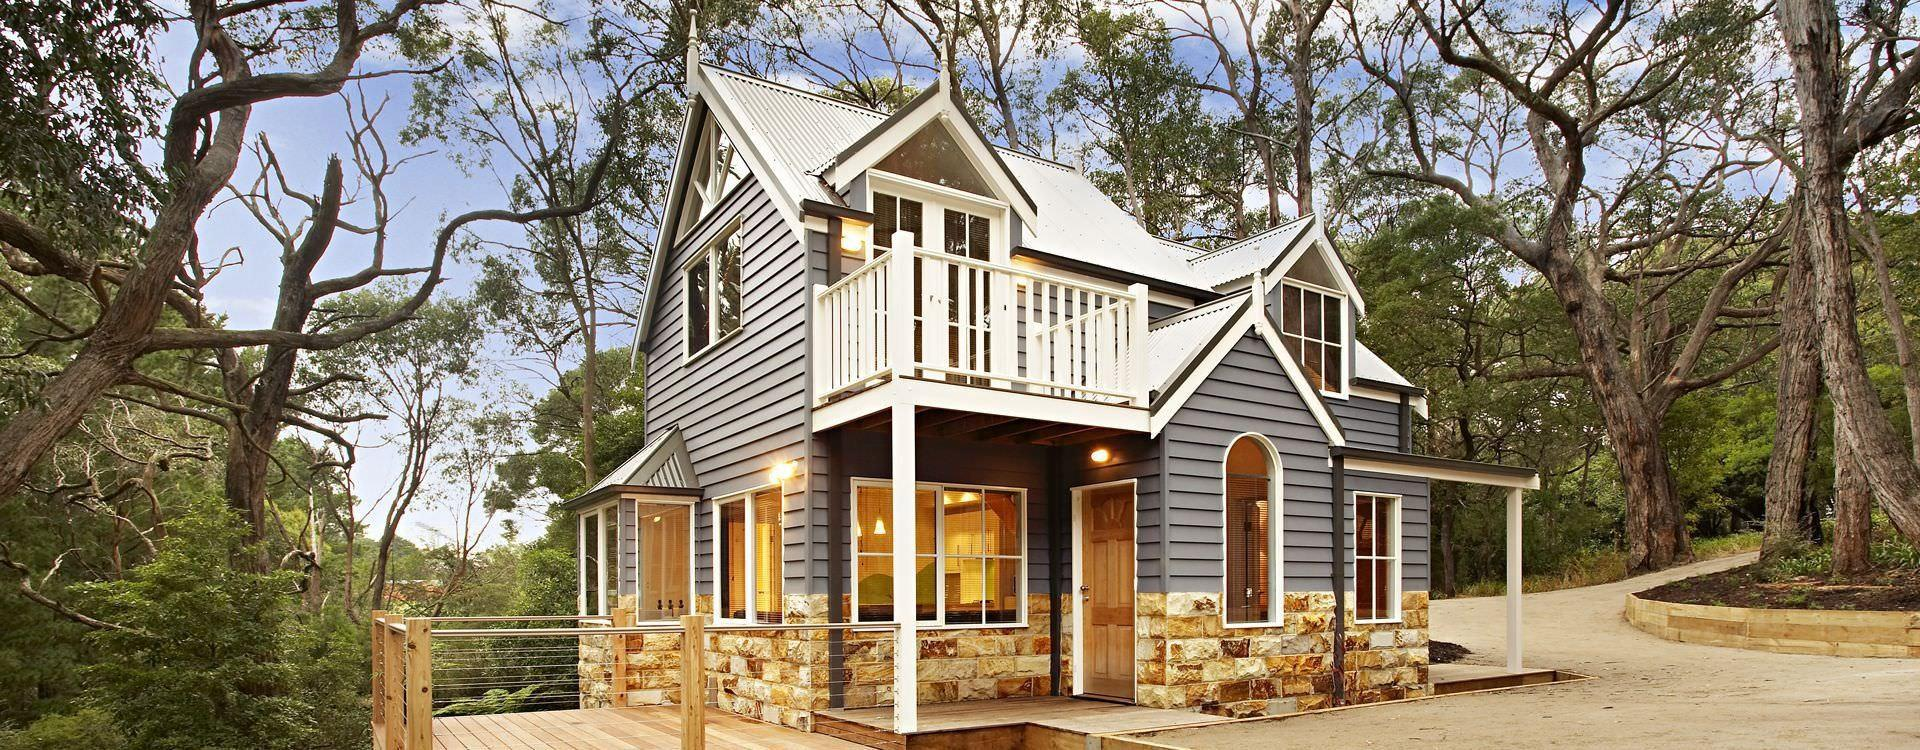 Remarkable Storybook Designer Homes Australian Kit